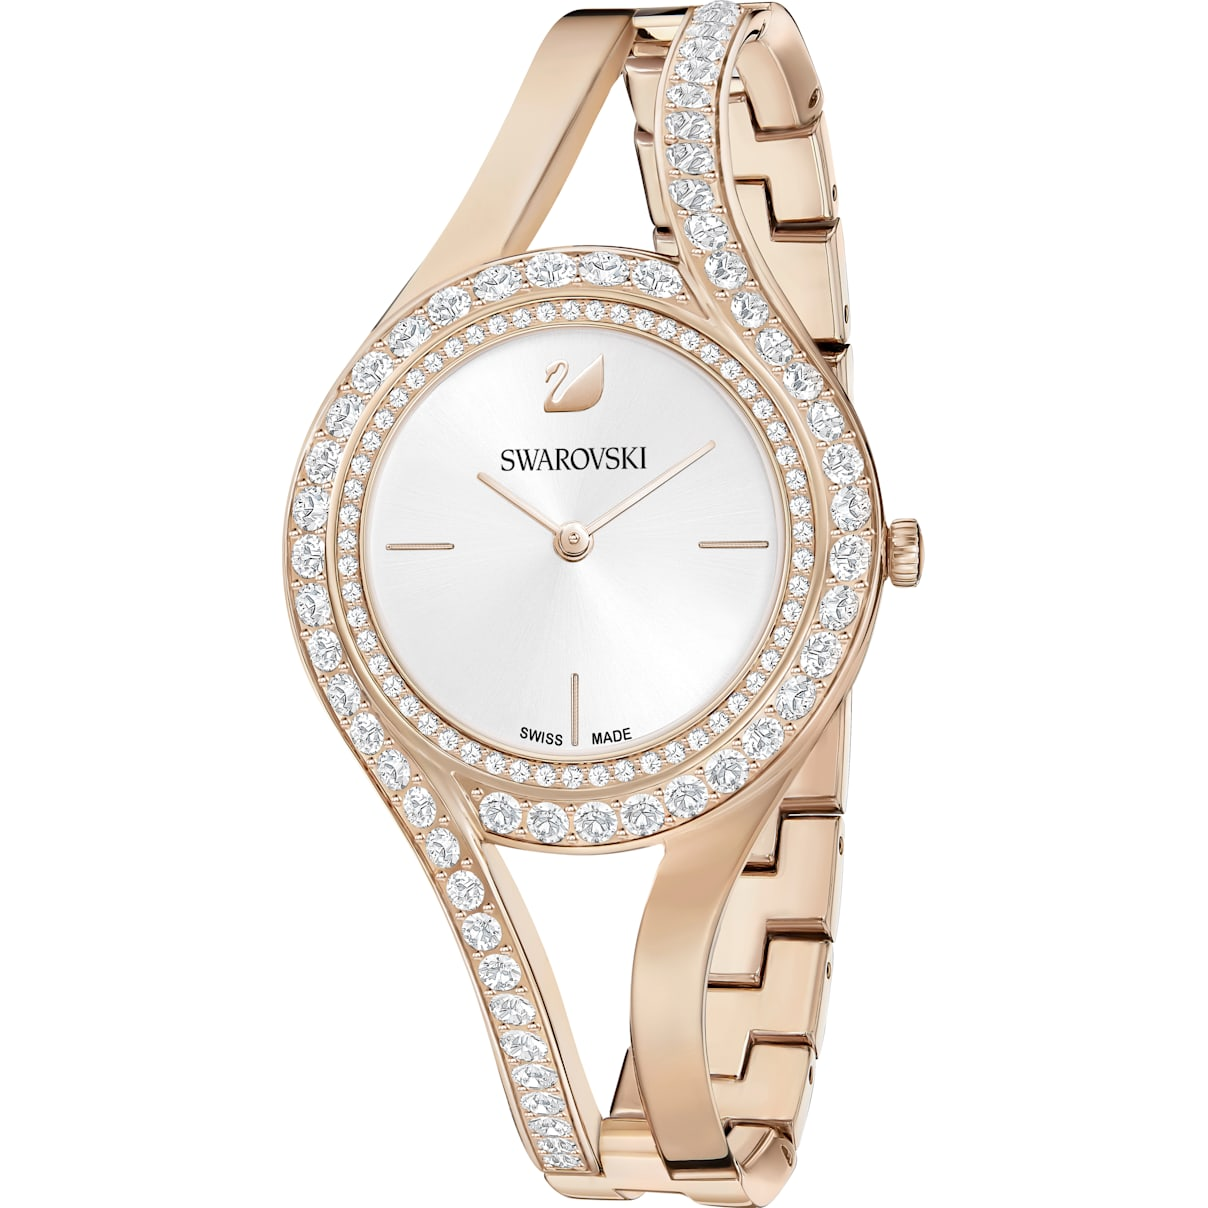 Swarovski Eternal Watch, Metal bracelet, White, Champagne-gold tone PVD